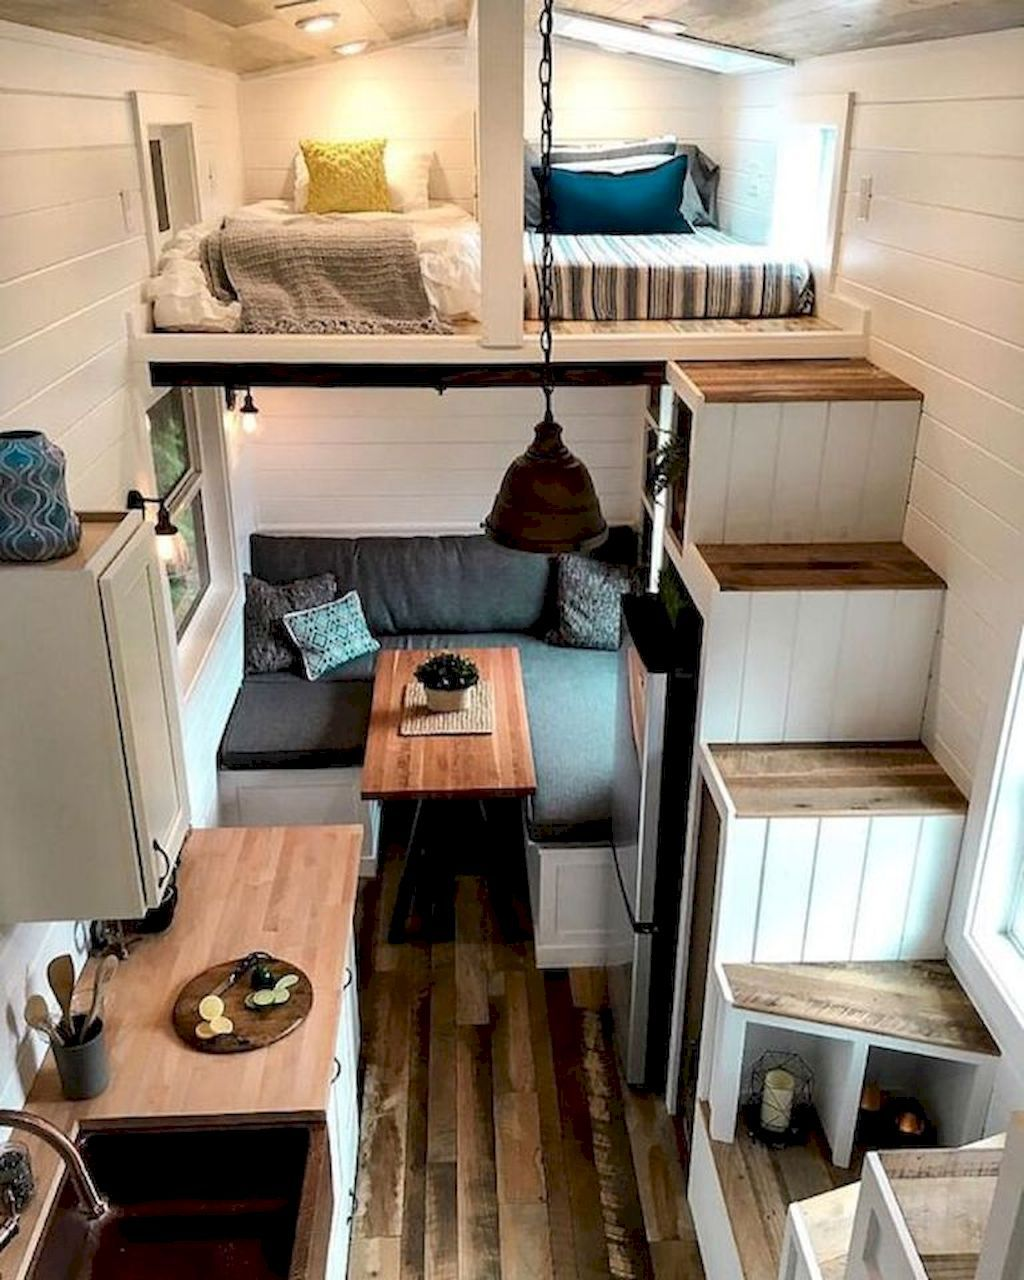 Nice 80 Amazing Loft Stair For Tiny House Ideas Https Homespecially Com 80 Amazing Loft Stair For Tin Tiny House Interior Tiny House Design Tiny House Living